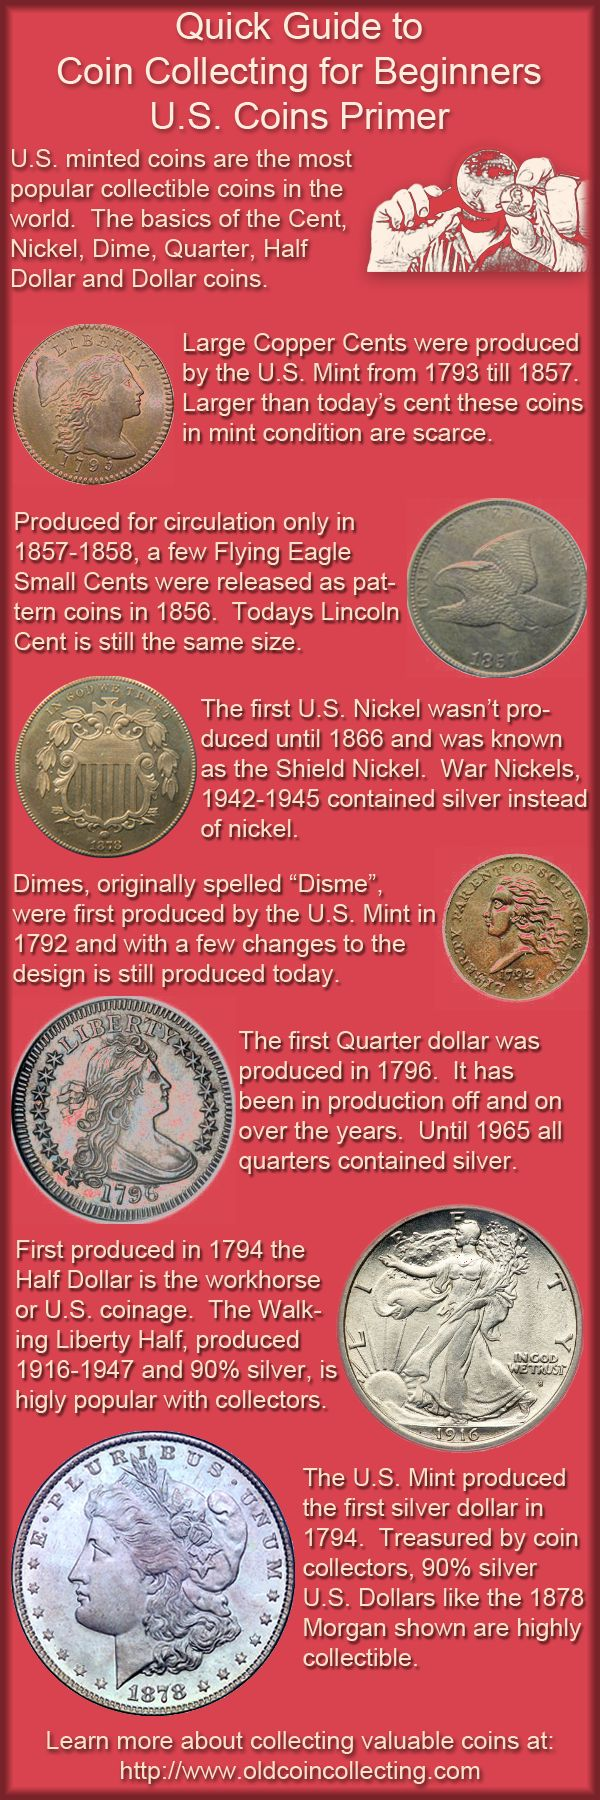 Beginning coin collectors primer of U.S. Coins...